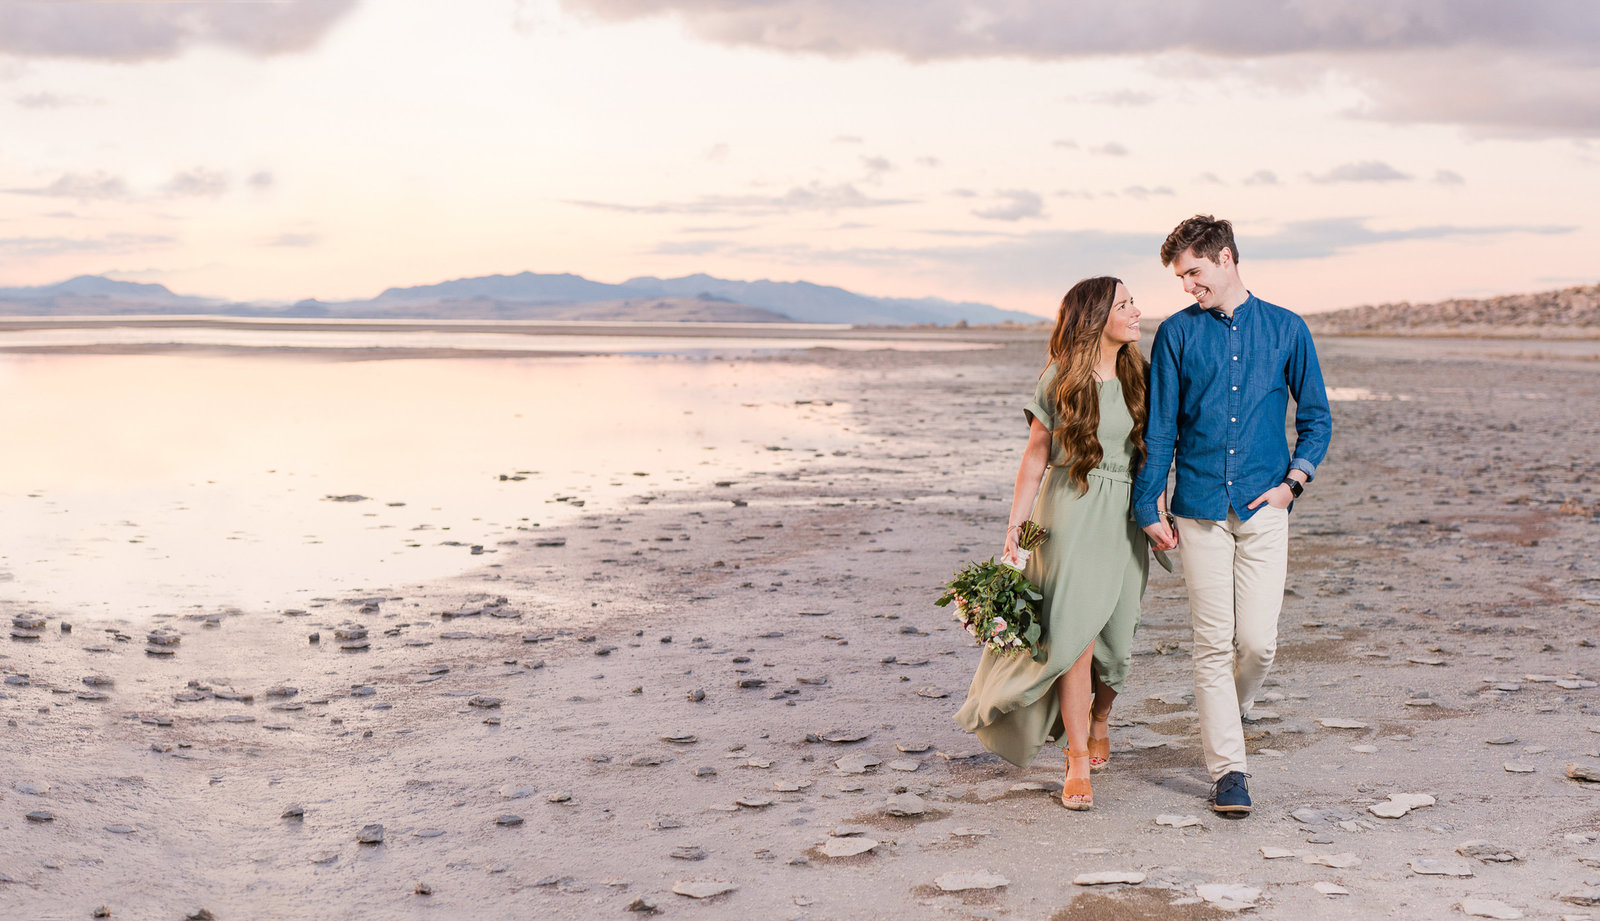 Utah Wedding Photographers - Jessie and Dallin Photography RE-14 COVER